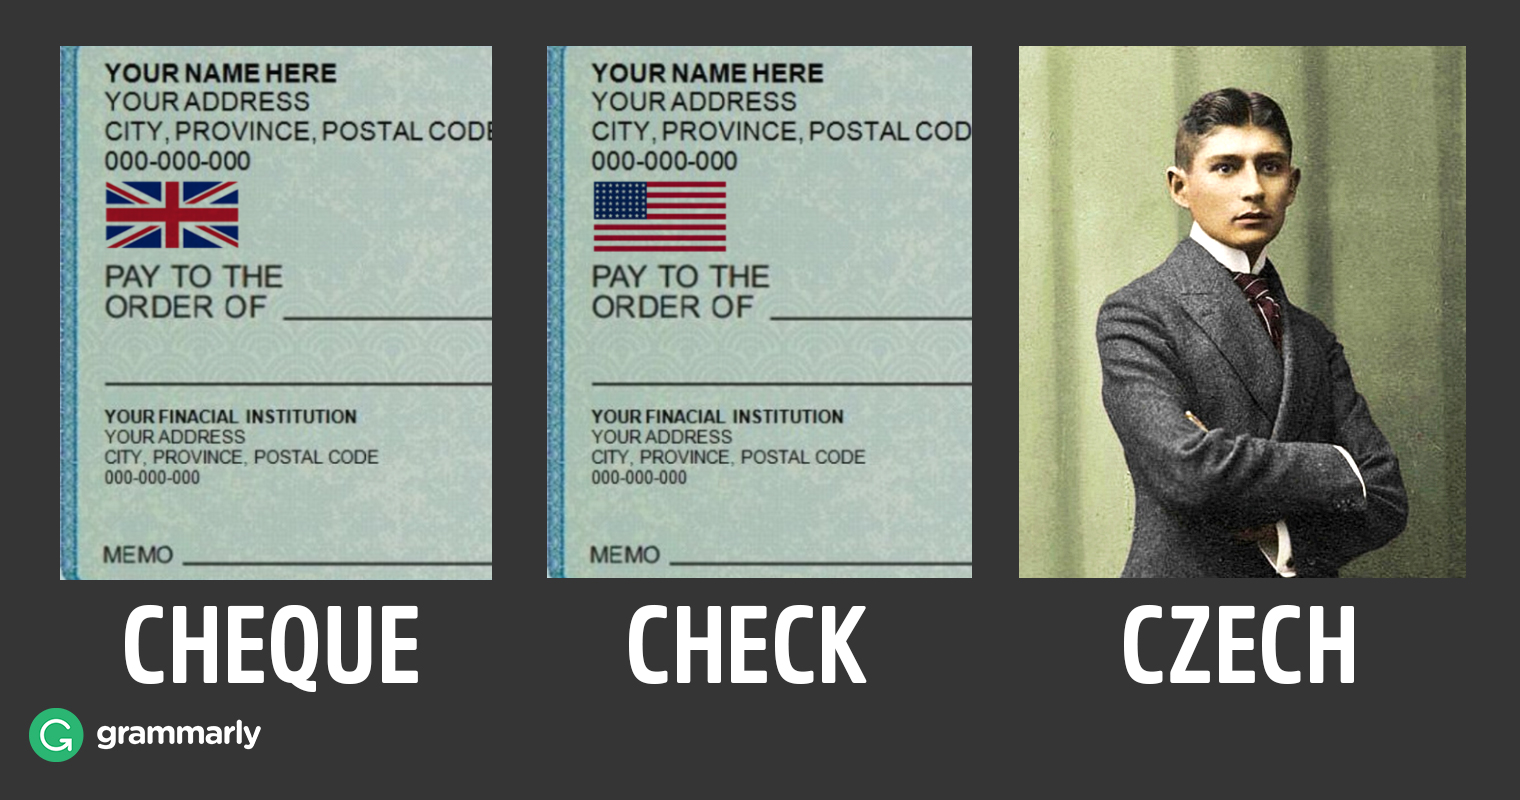 Cheque vs. Check image